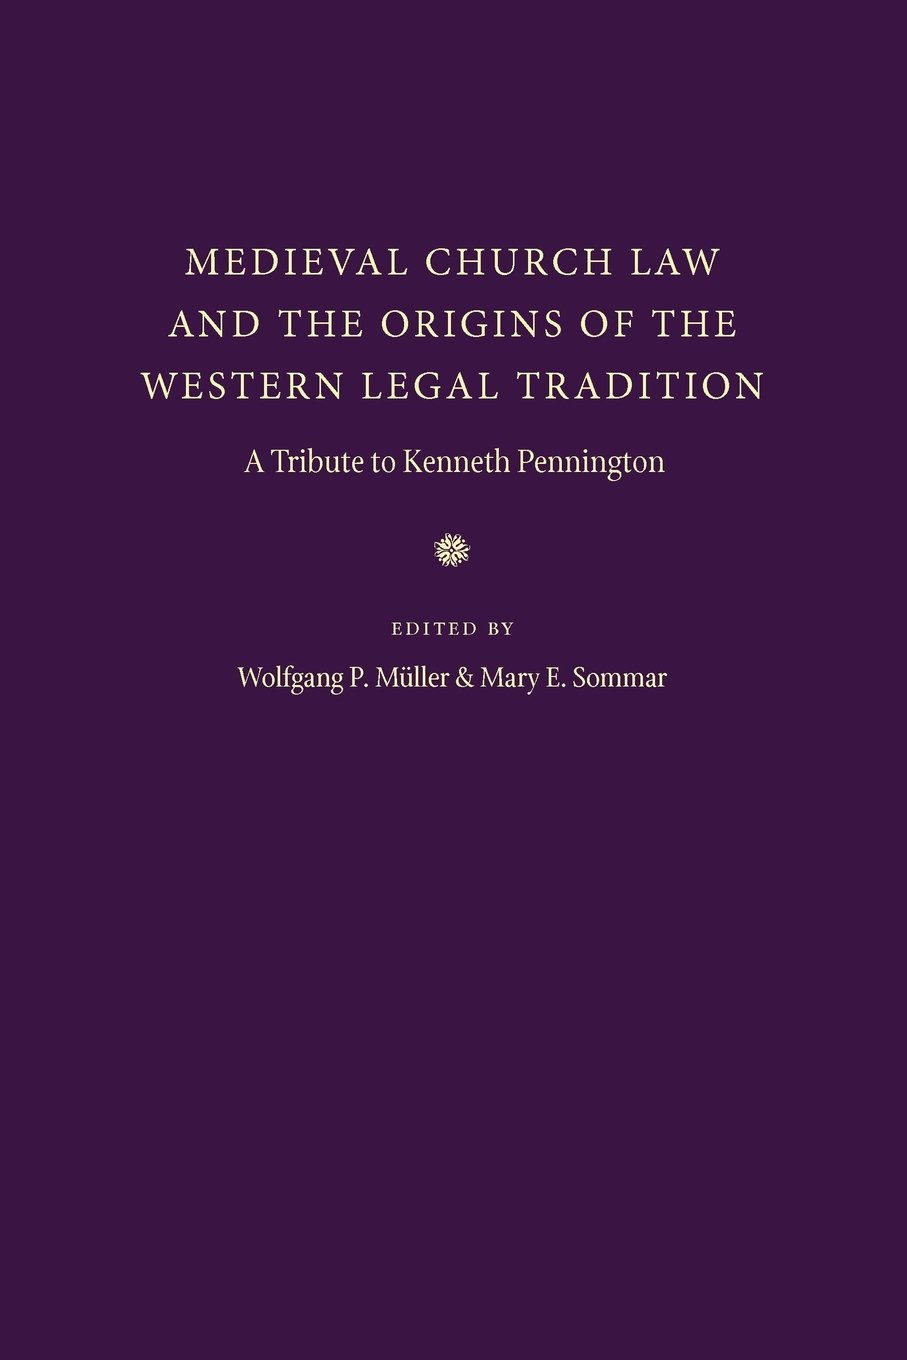 Medieval Church Law and the Origins of the Western Legal Tradition: A Tribute to Kenneth Pennington